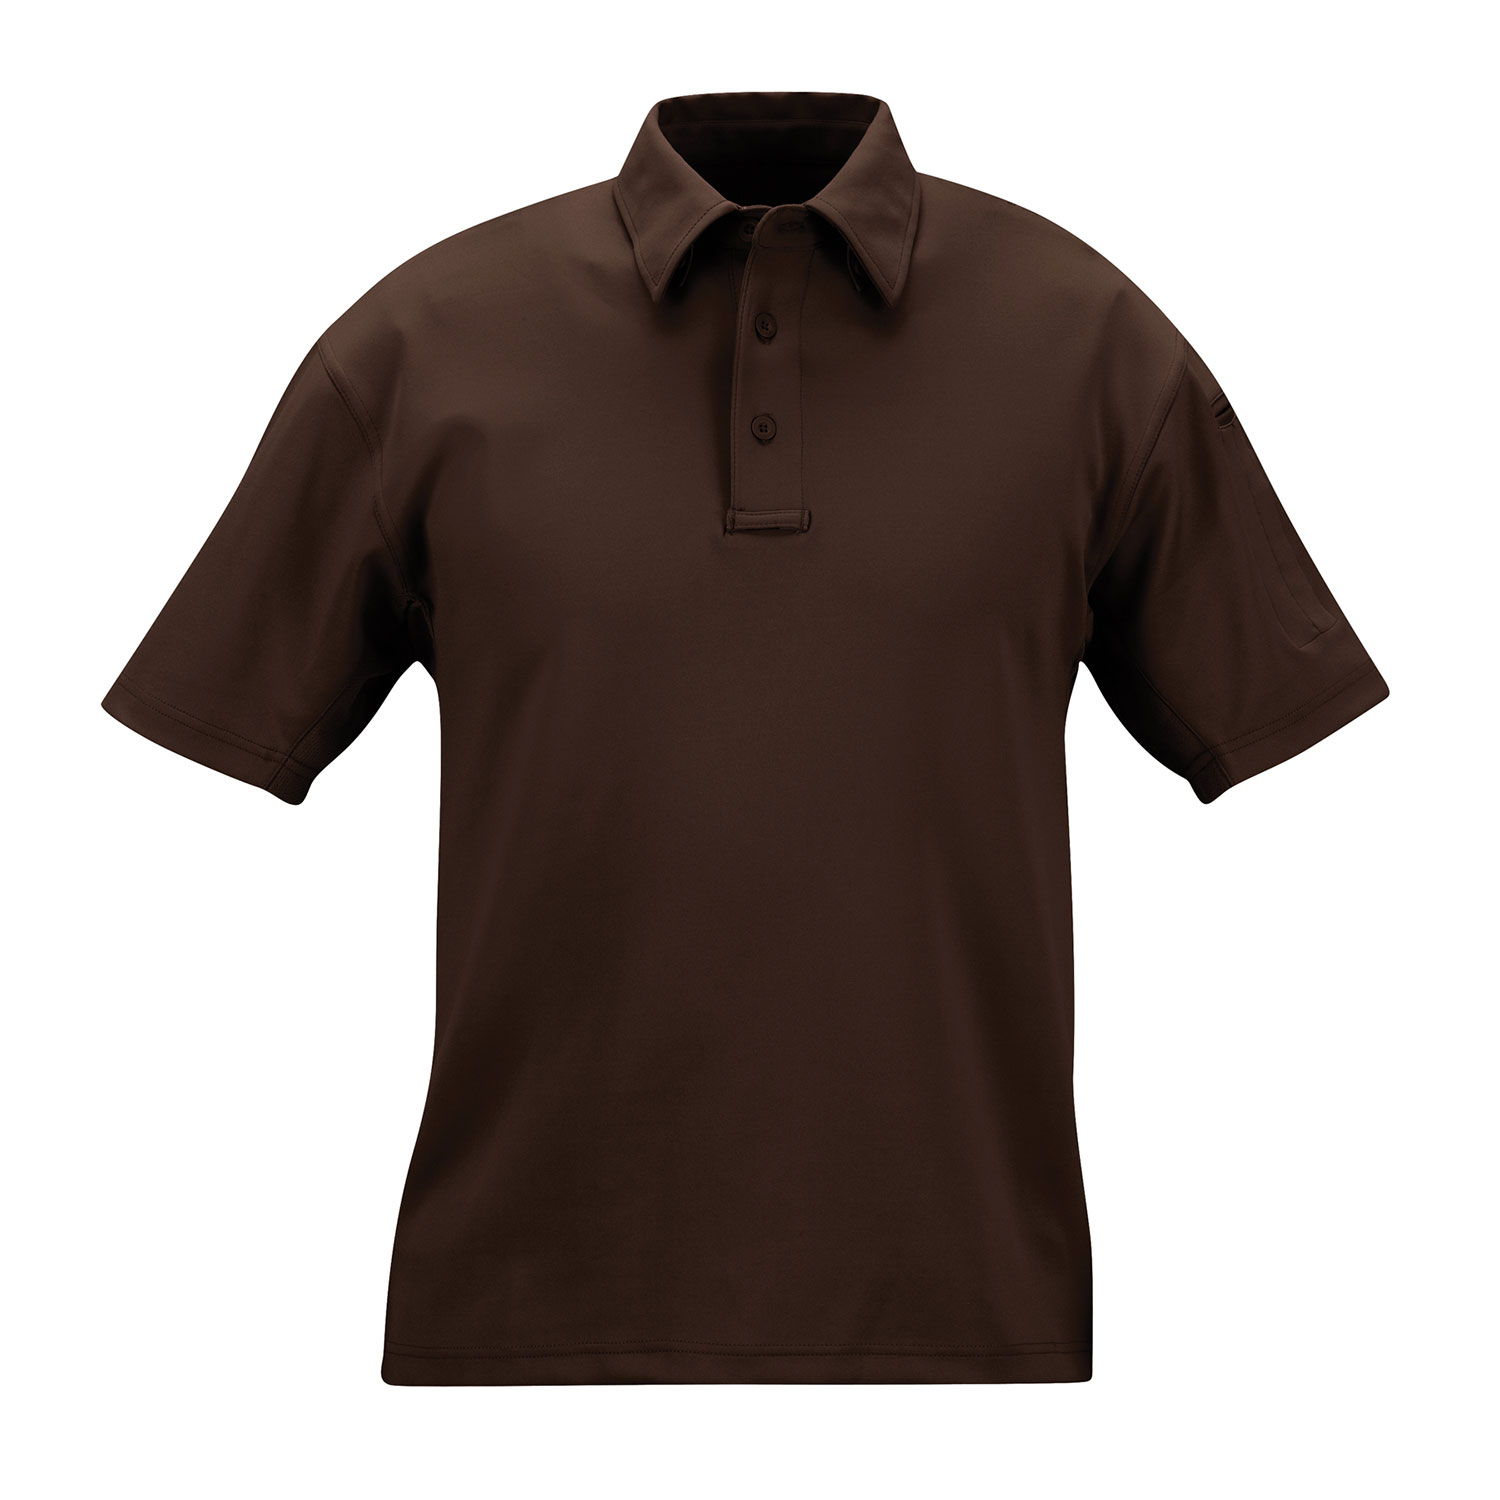 Propper I.C.E. Performance Polo Shirt